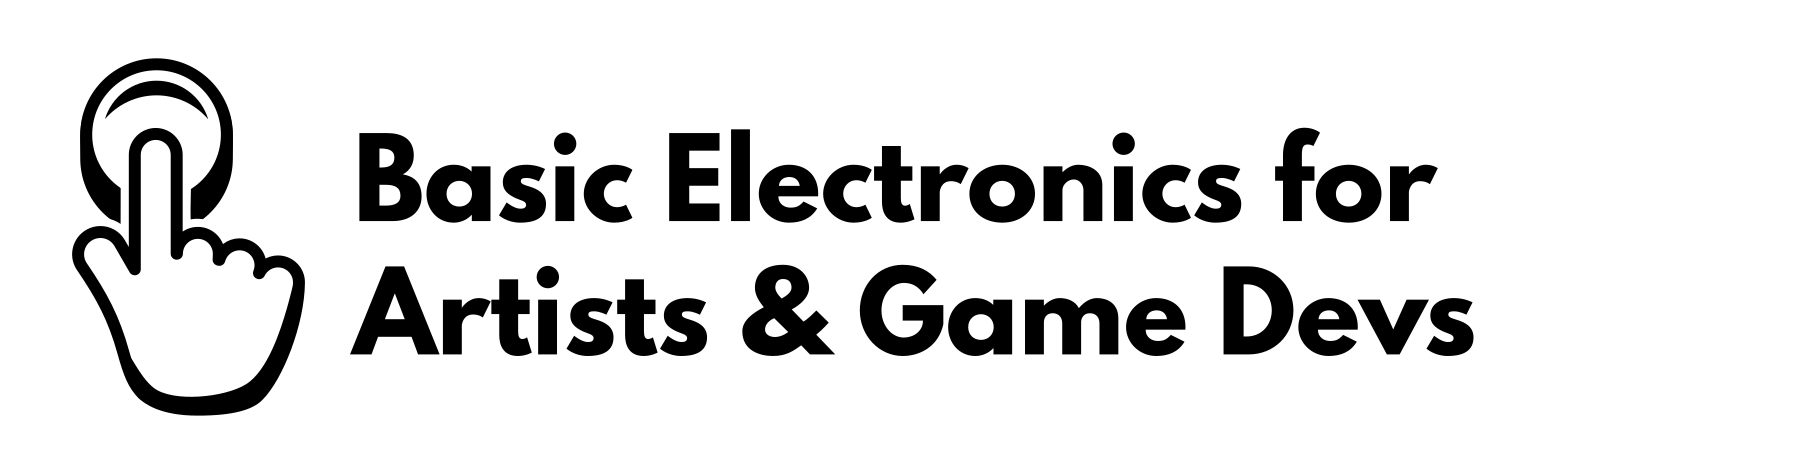 Basic Electronics for Artists & Game Devs: 1